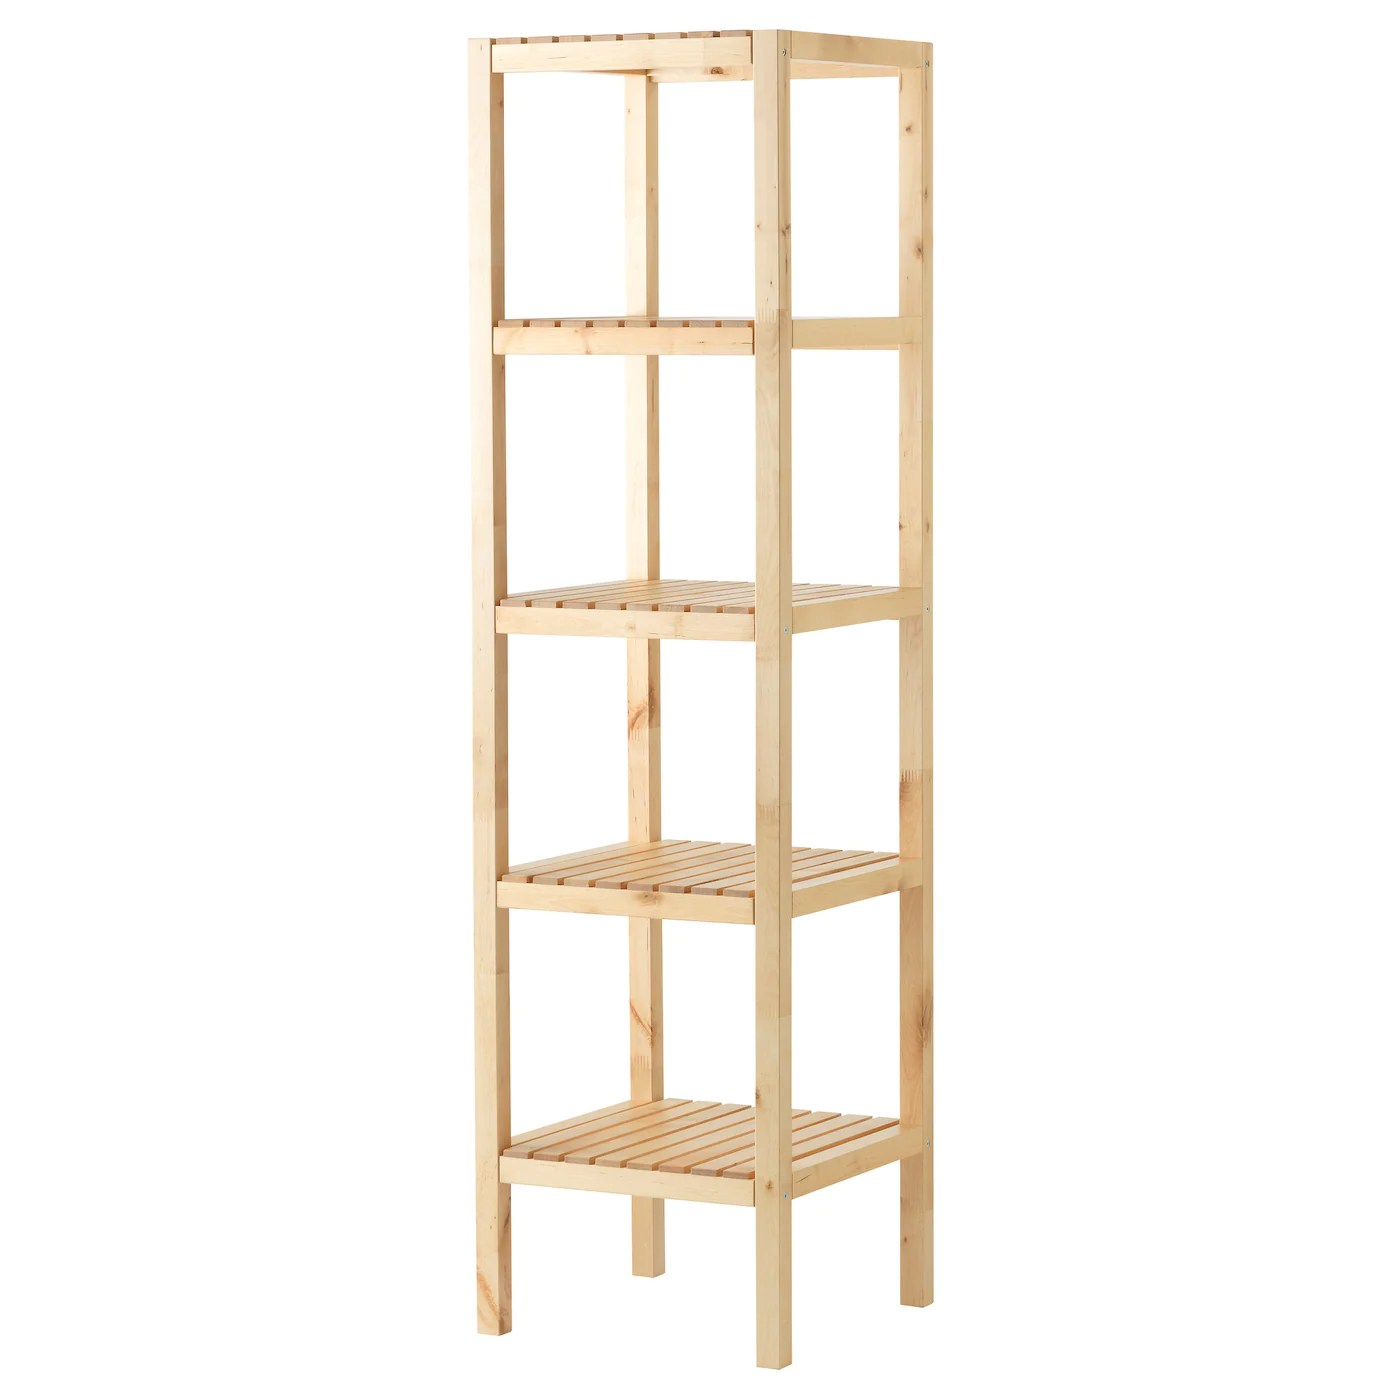 Bad Wandregal Badregal Holz Schmal Glas Regal Klein Metallregal Ikea Birke Regal